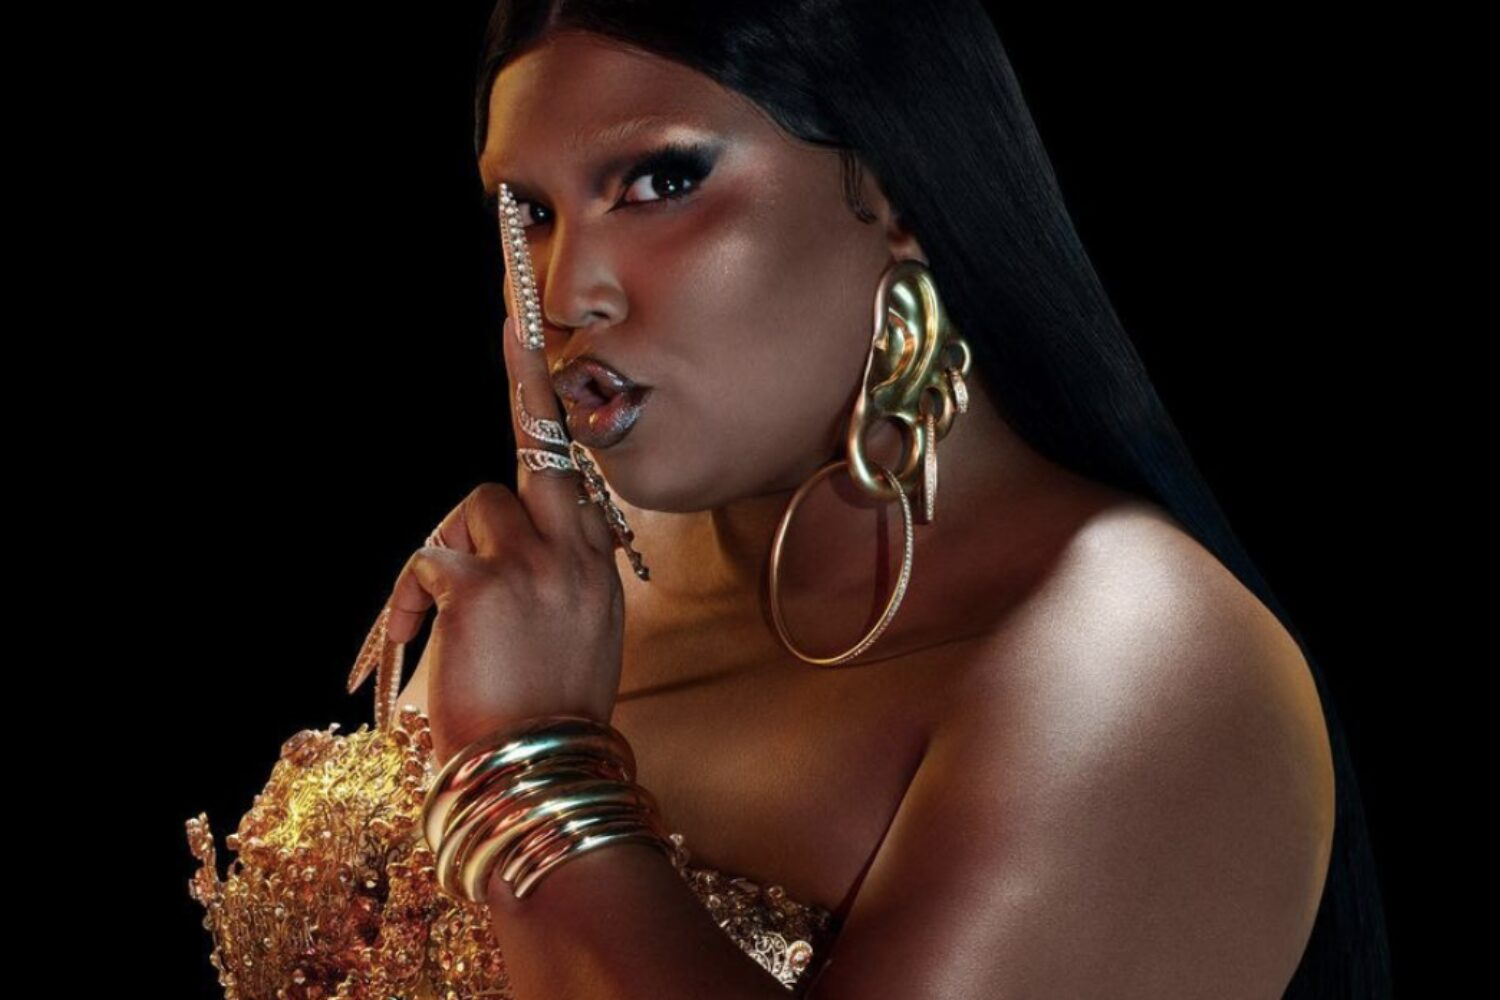 Cardi B to feature on Lizzo's new track 'Rumors'